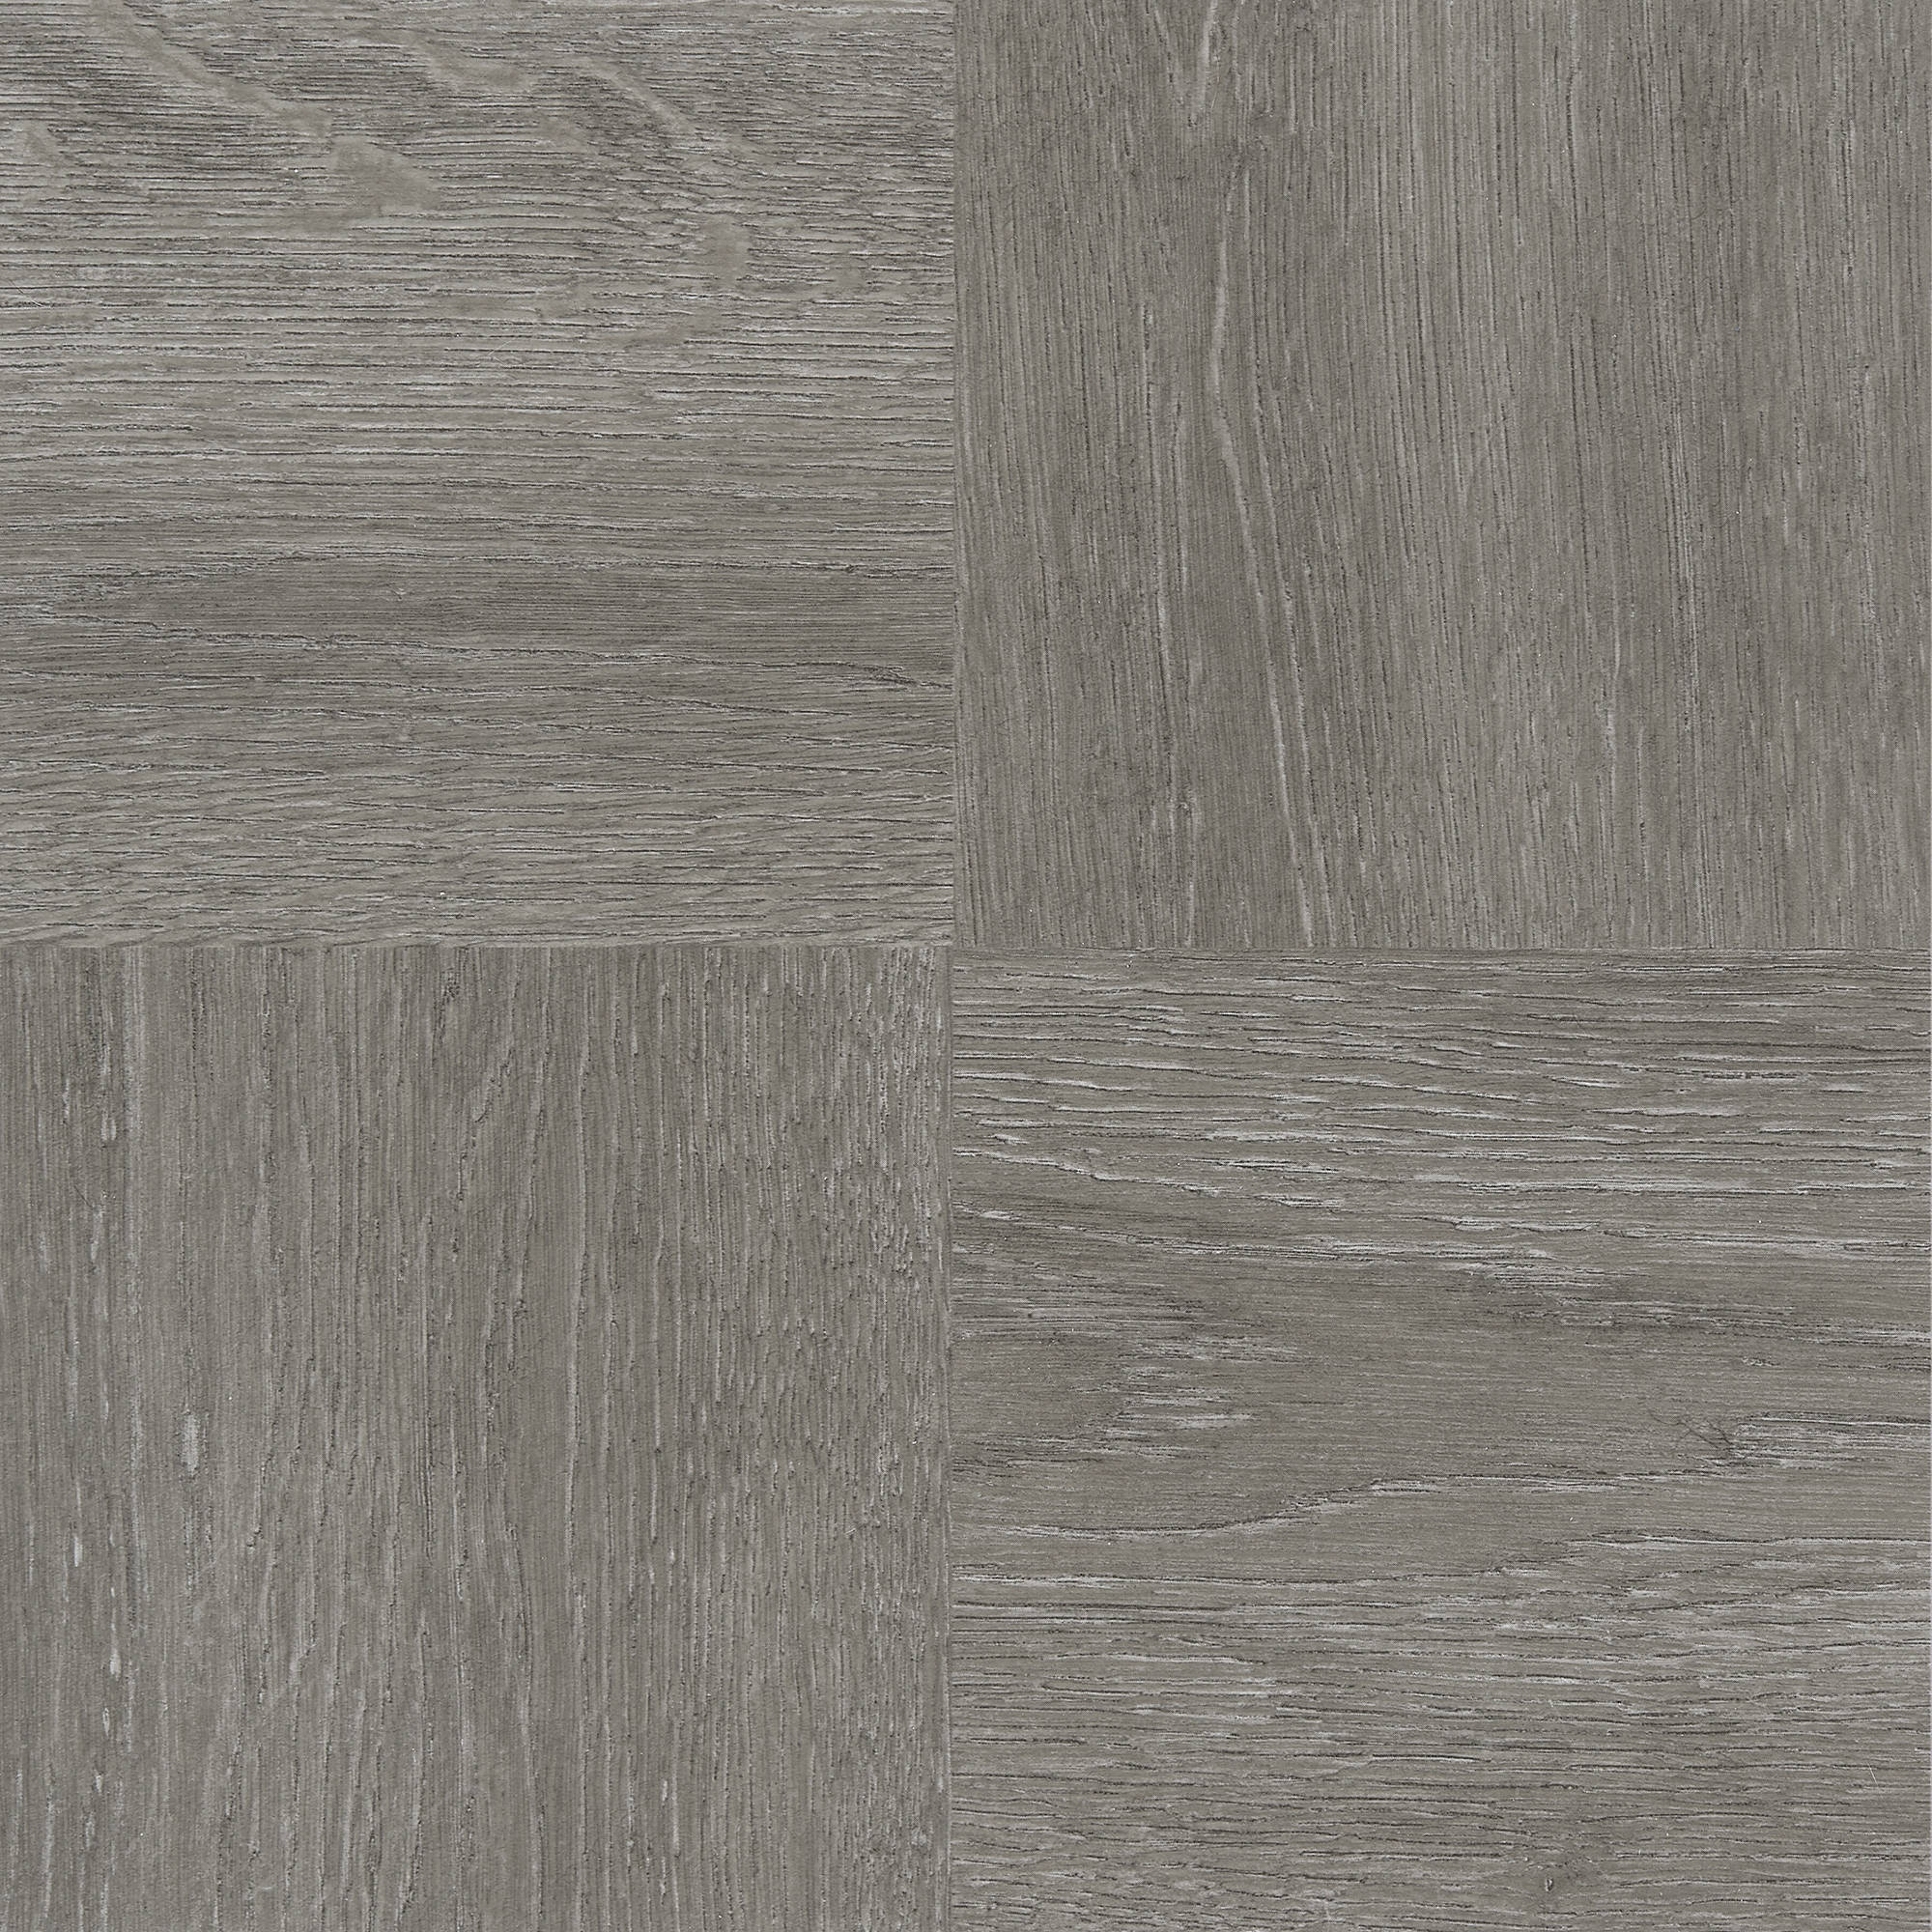 Nexus charcoal grey wood 12 x 12 self adhesive vinyl floor tile nexus charcoal grey wood 12 x 12 self adhesive vinyl floor tile 229 20 tiles walmart dailygadgetfo Image collections